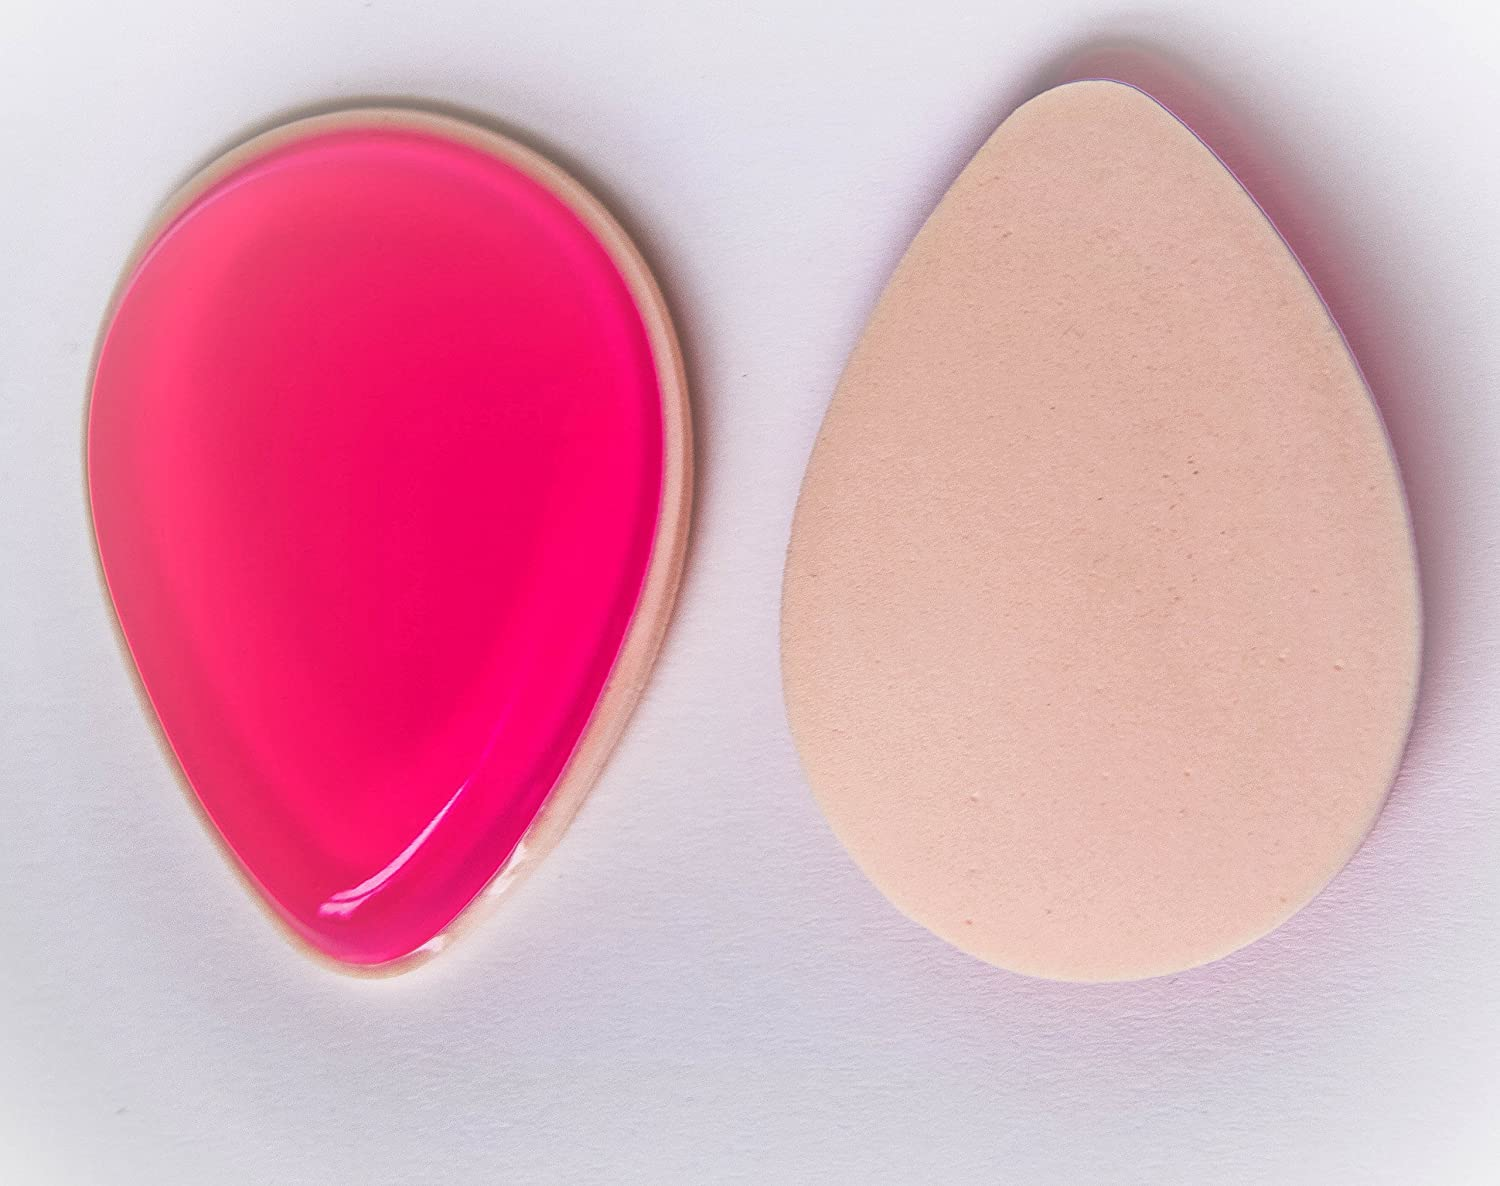 Silicon & Sponge 2in1 Teardrop Pink Makeup Blender